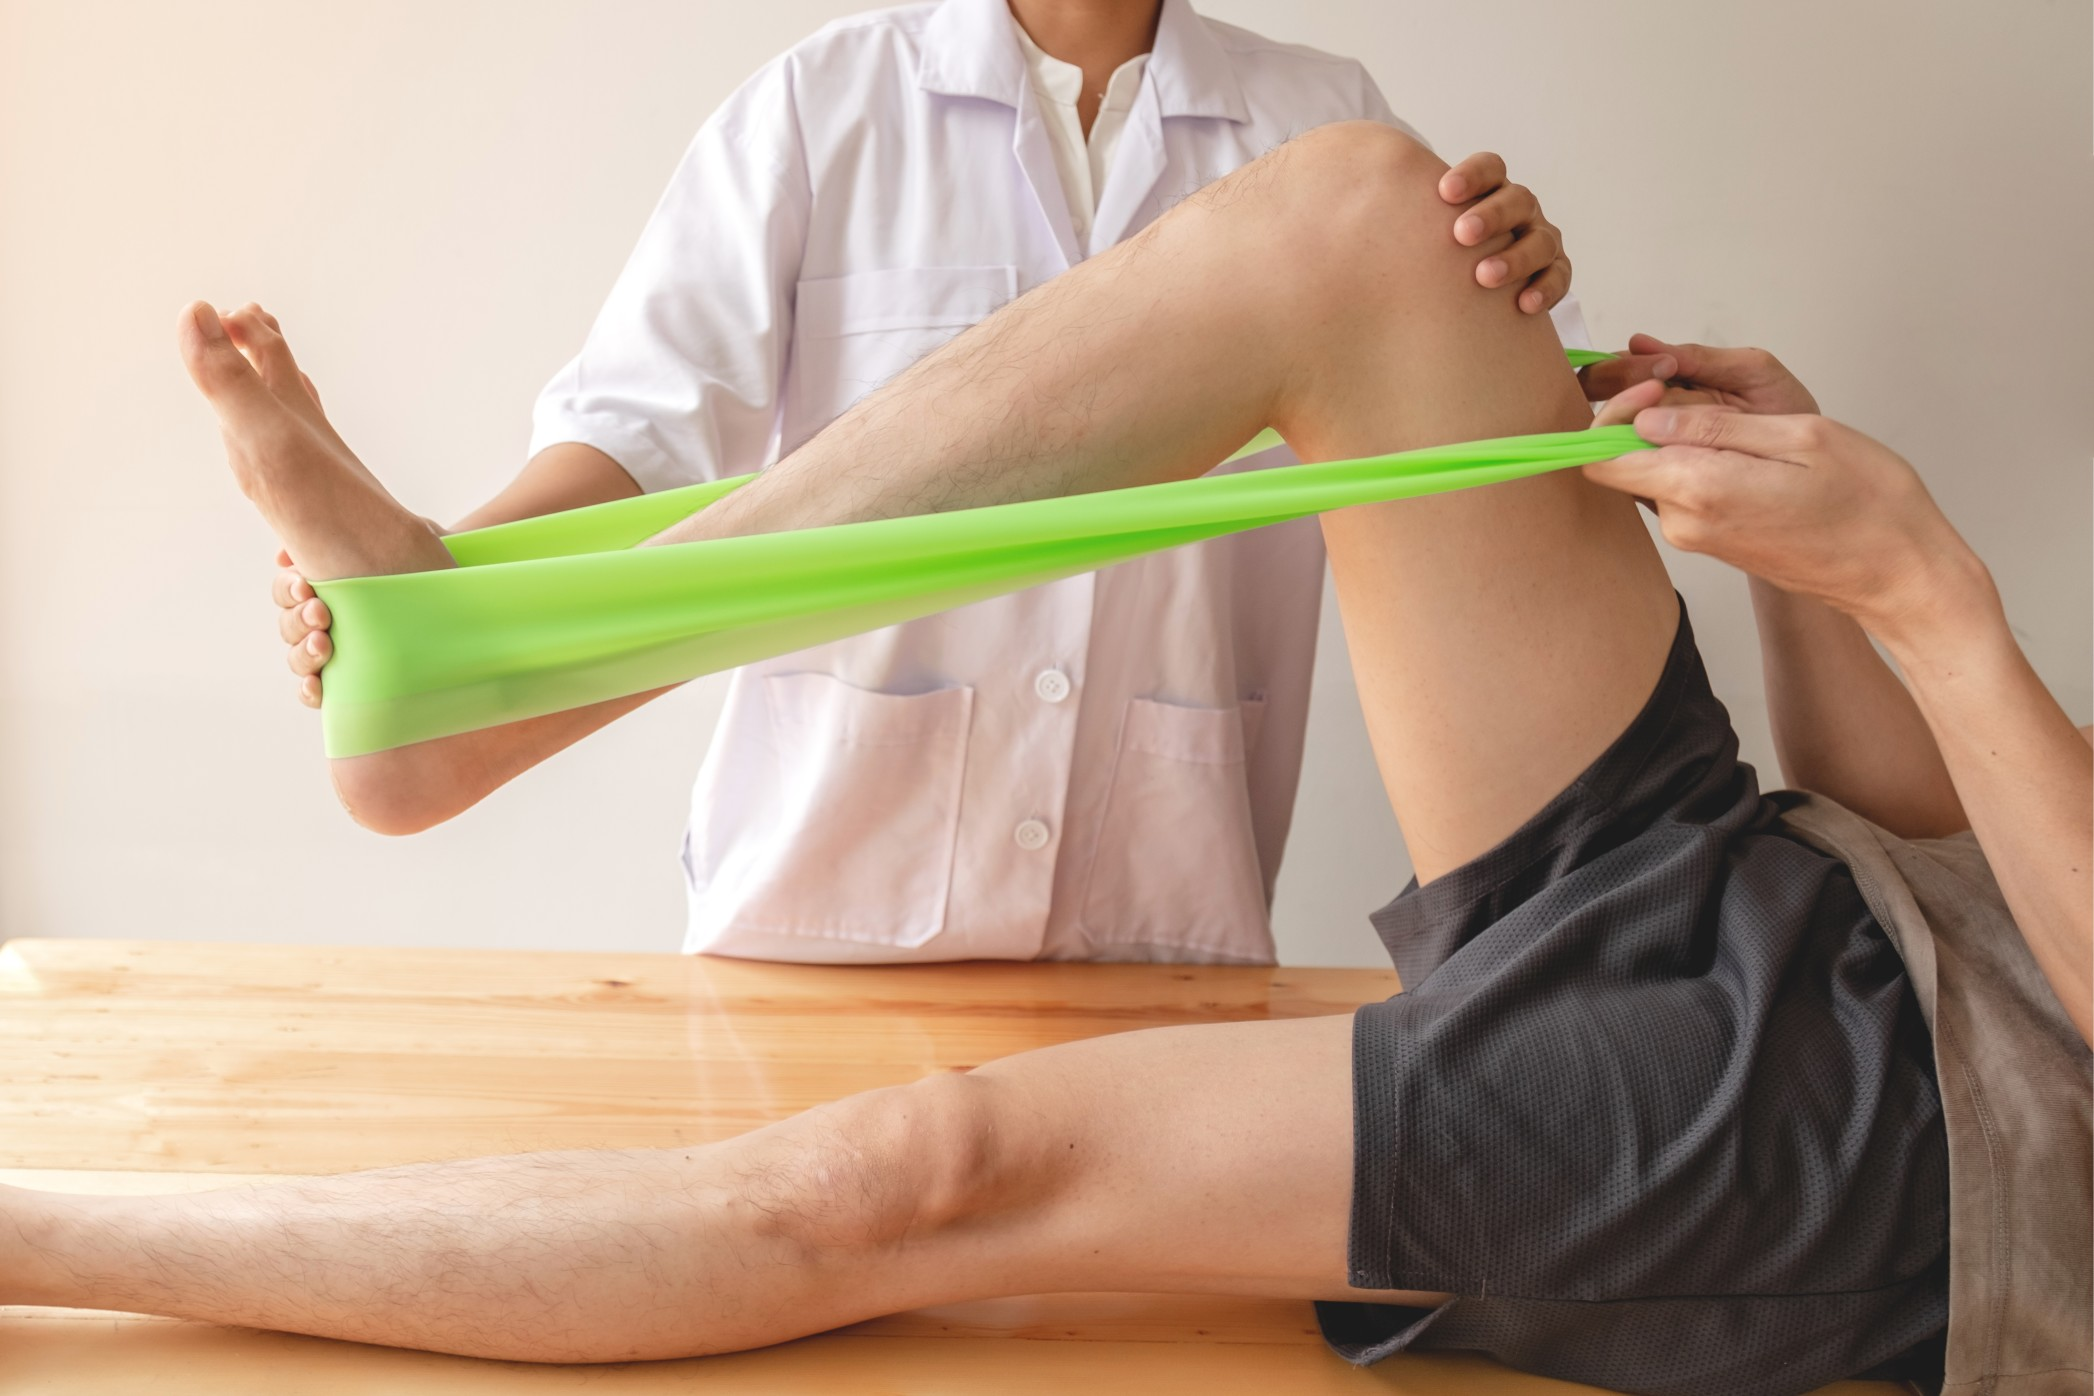 Post-Surgery Joint Physiotherapy for Faster Healing